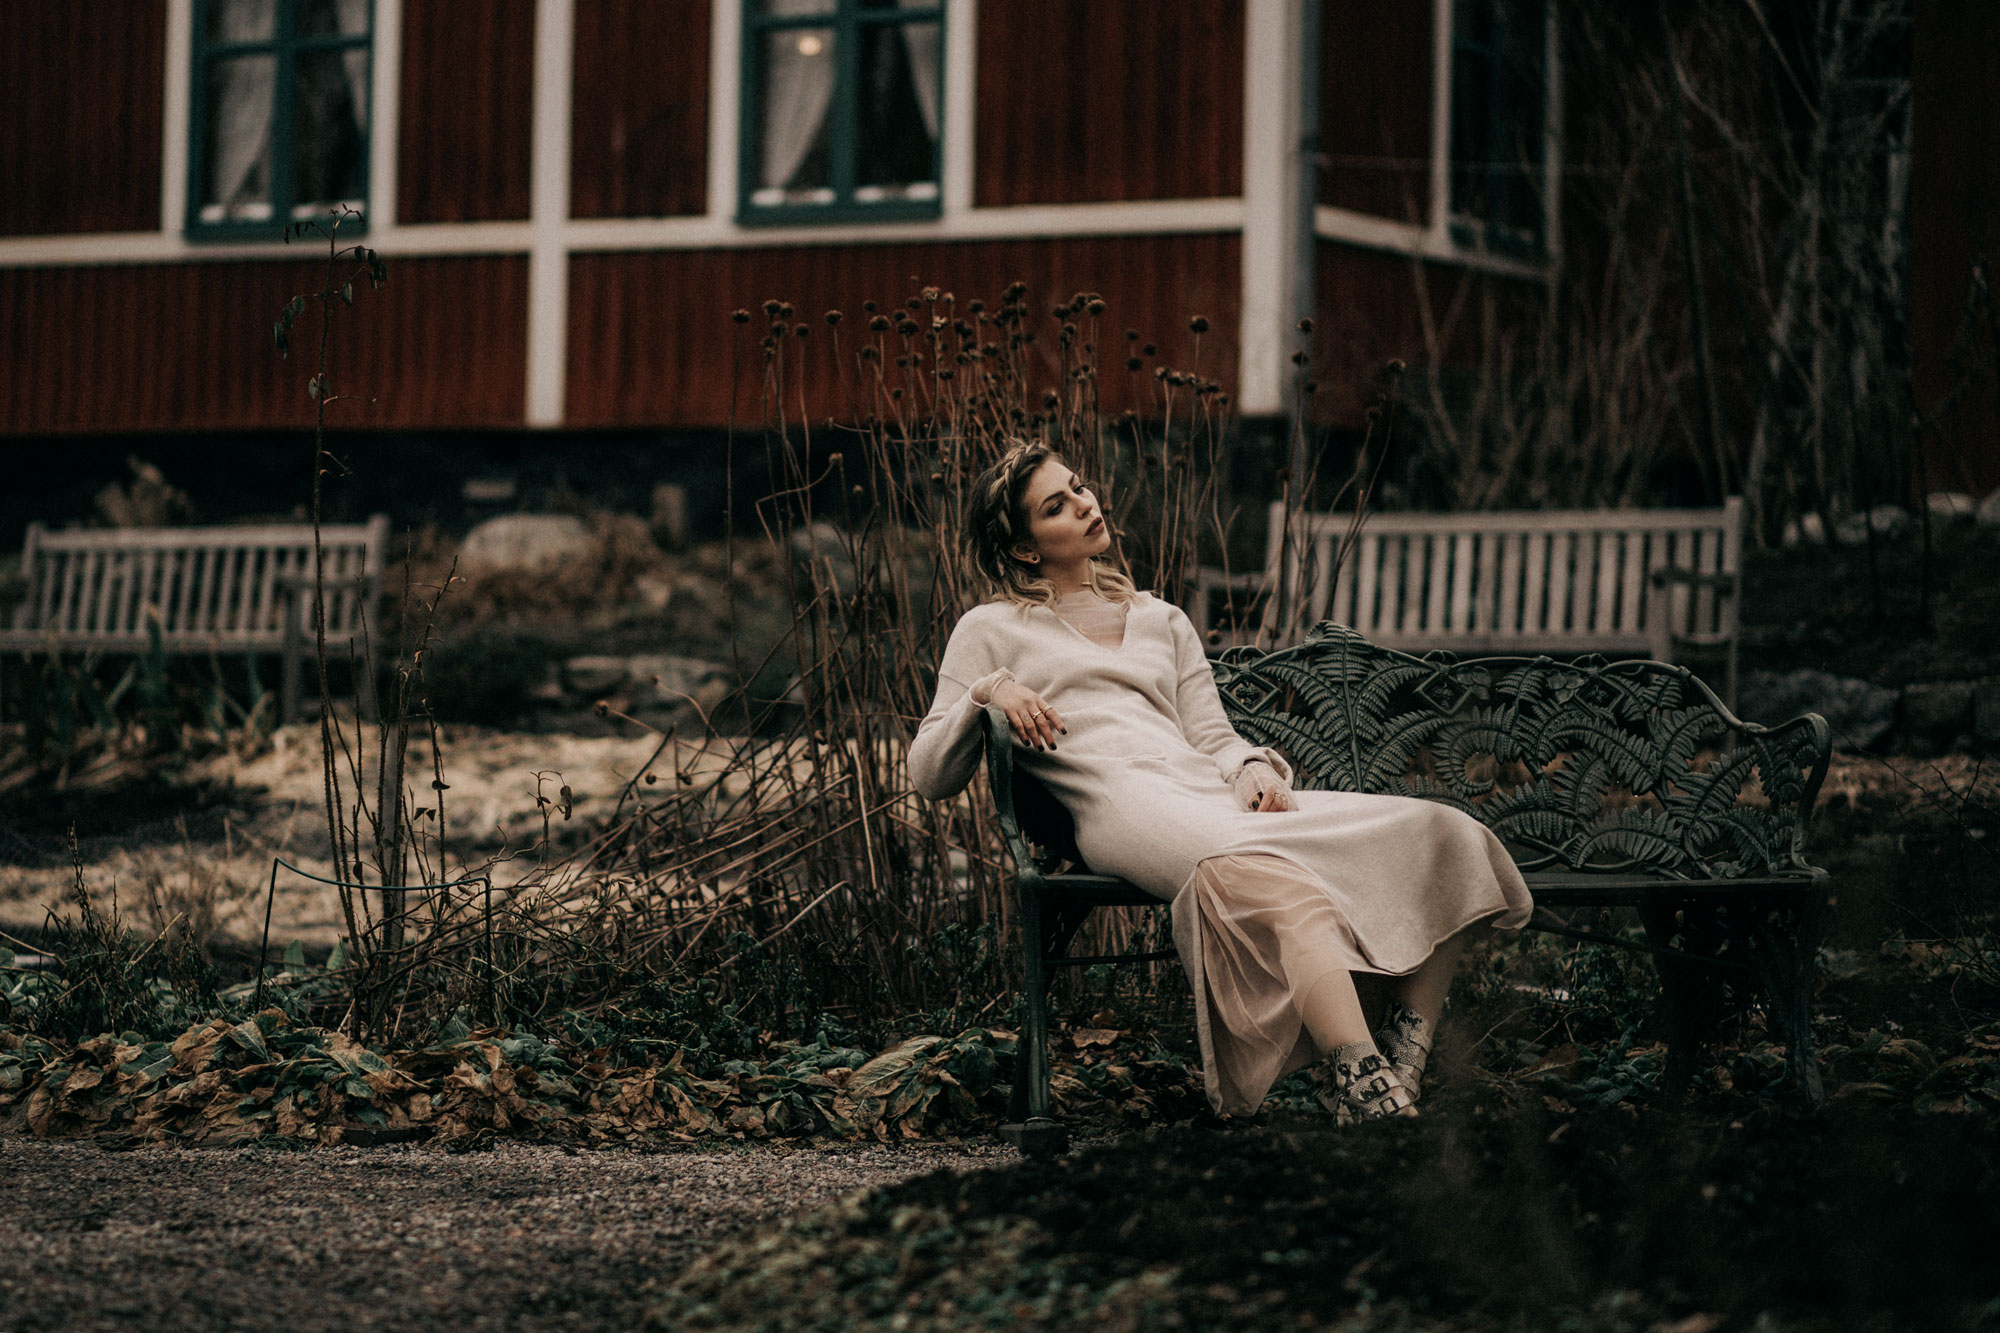 Fashion Editorial: Traditional Sweden | style: folklore, winter, moody, edgy, natural + 5 tips for a more hygge life | location: Skansen, Stockholm